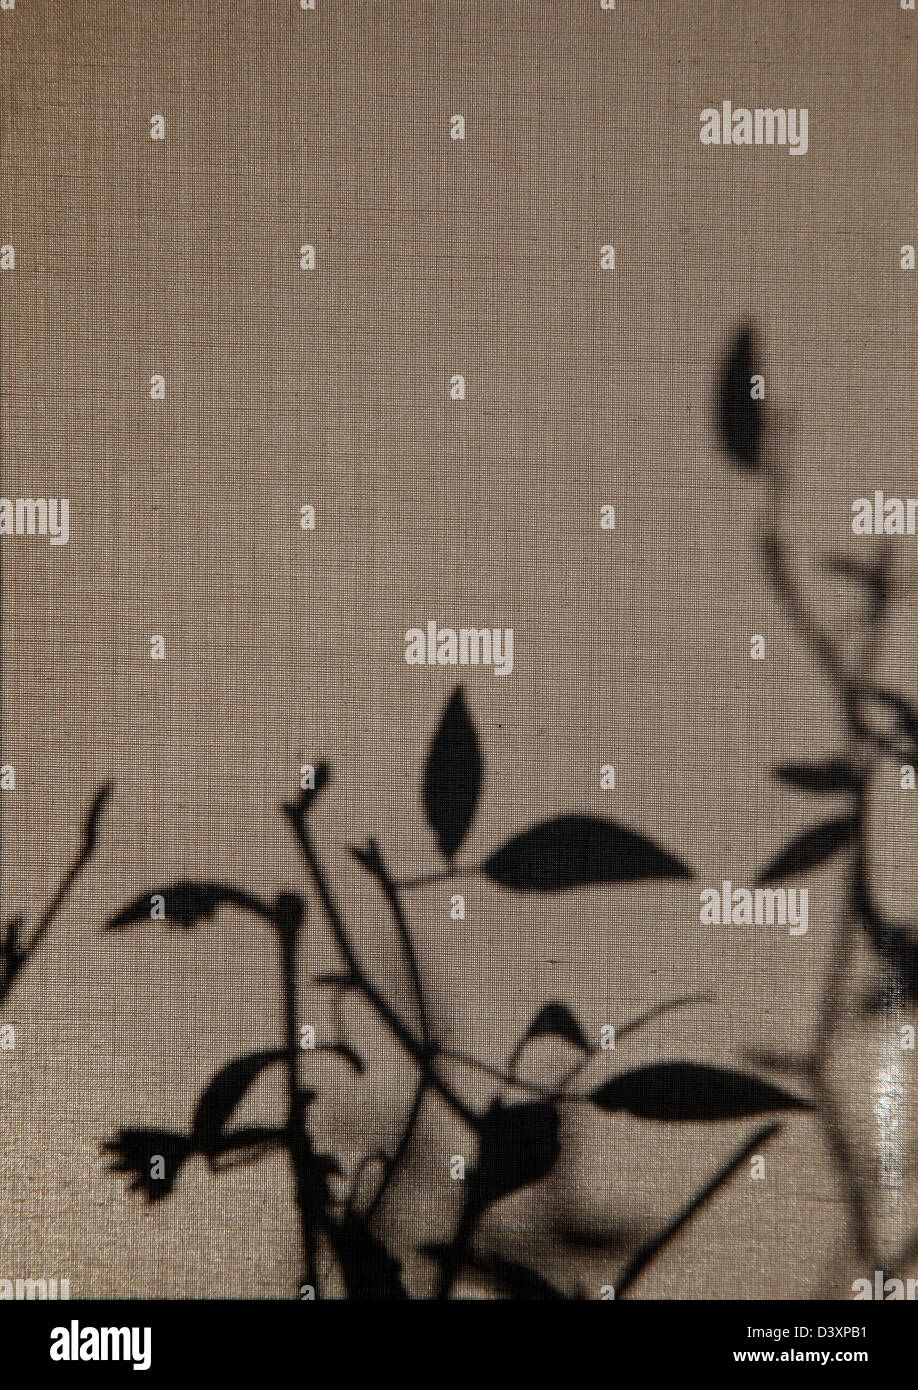 Branch And Leaf Shadow On Window Blind Stock Photo 54063381 Alamy